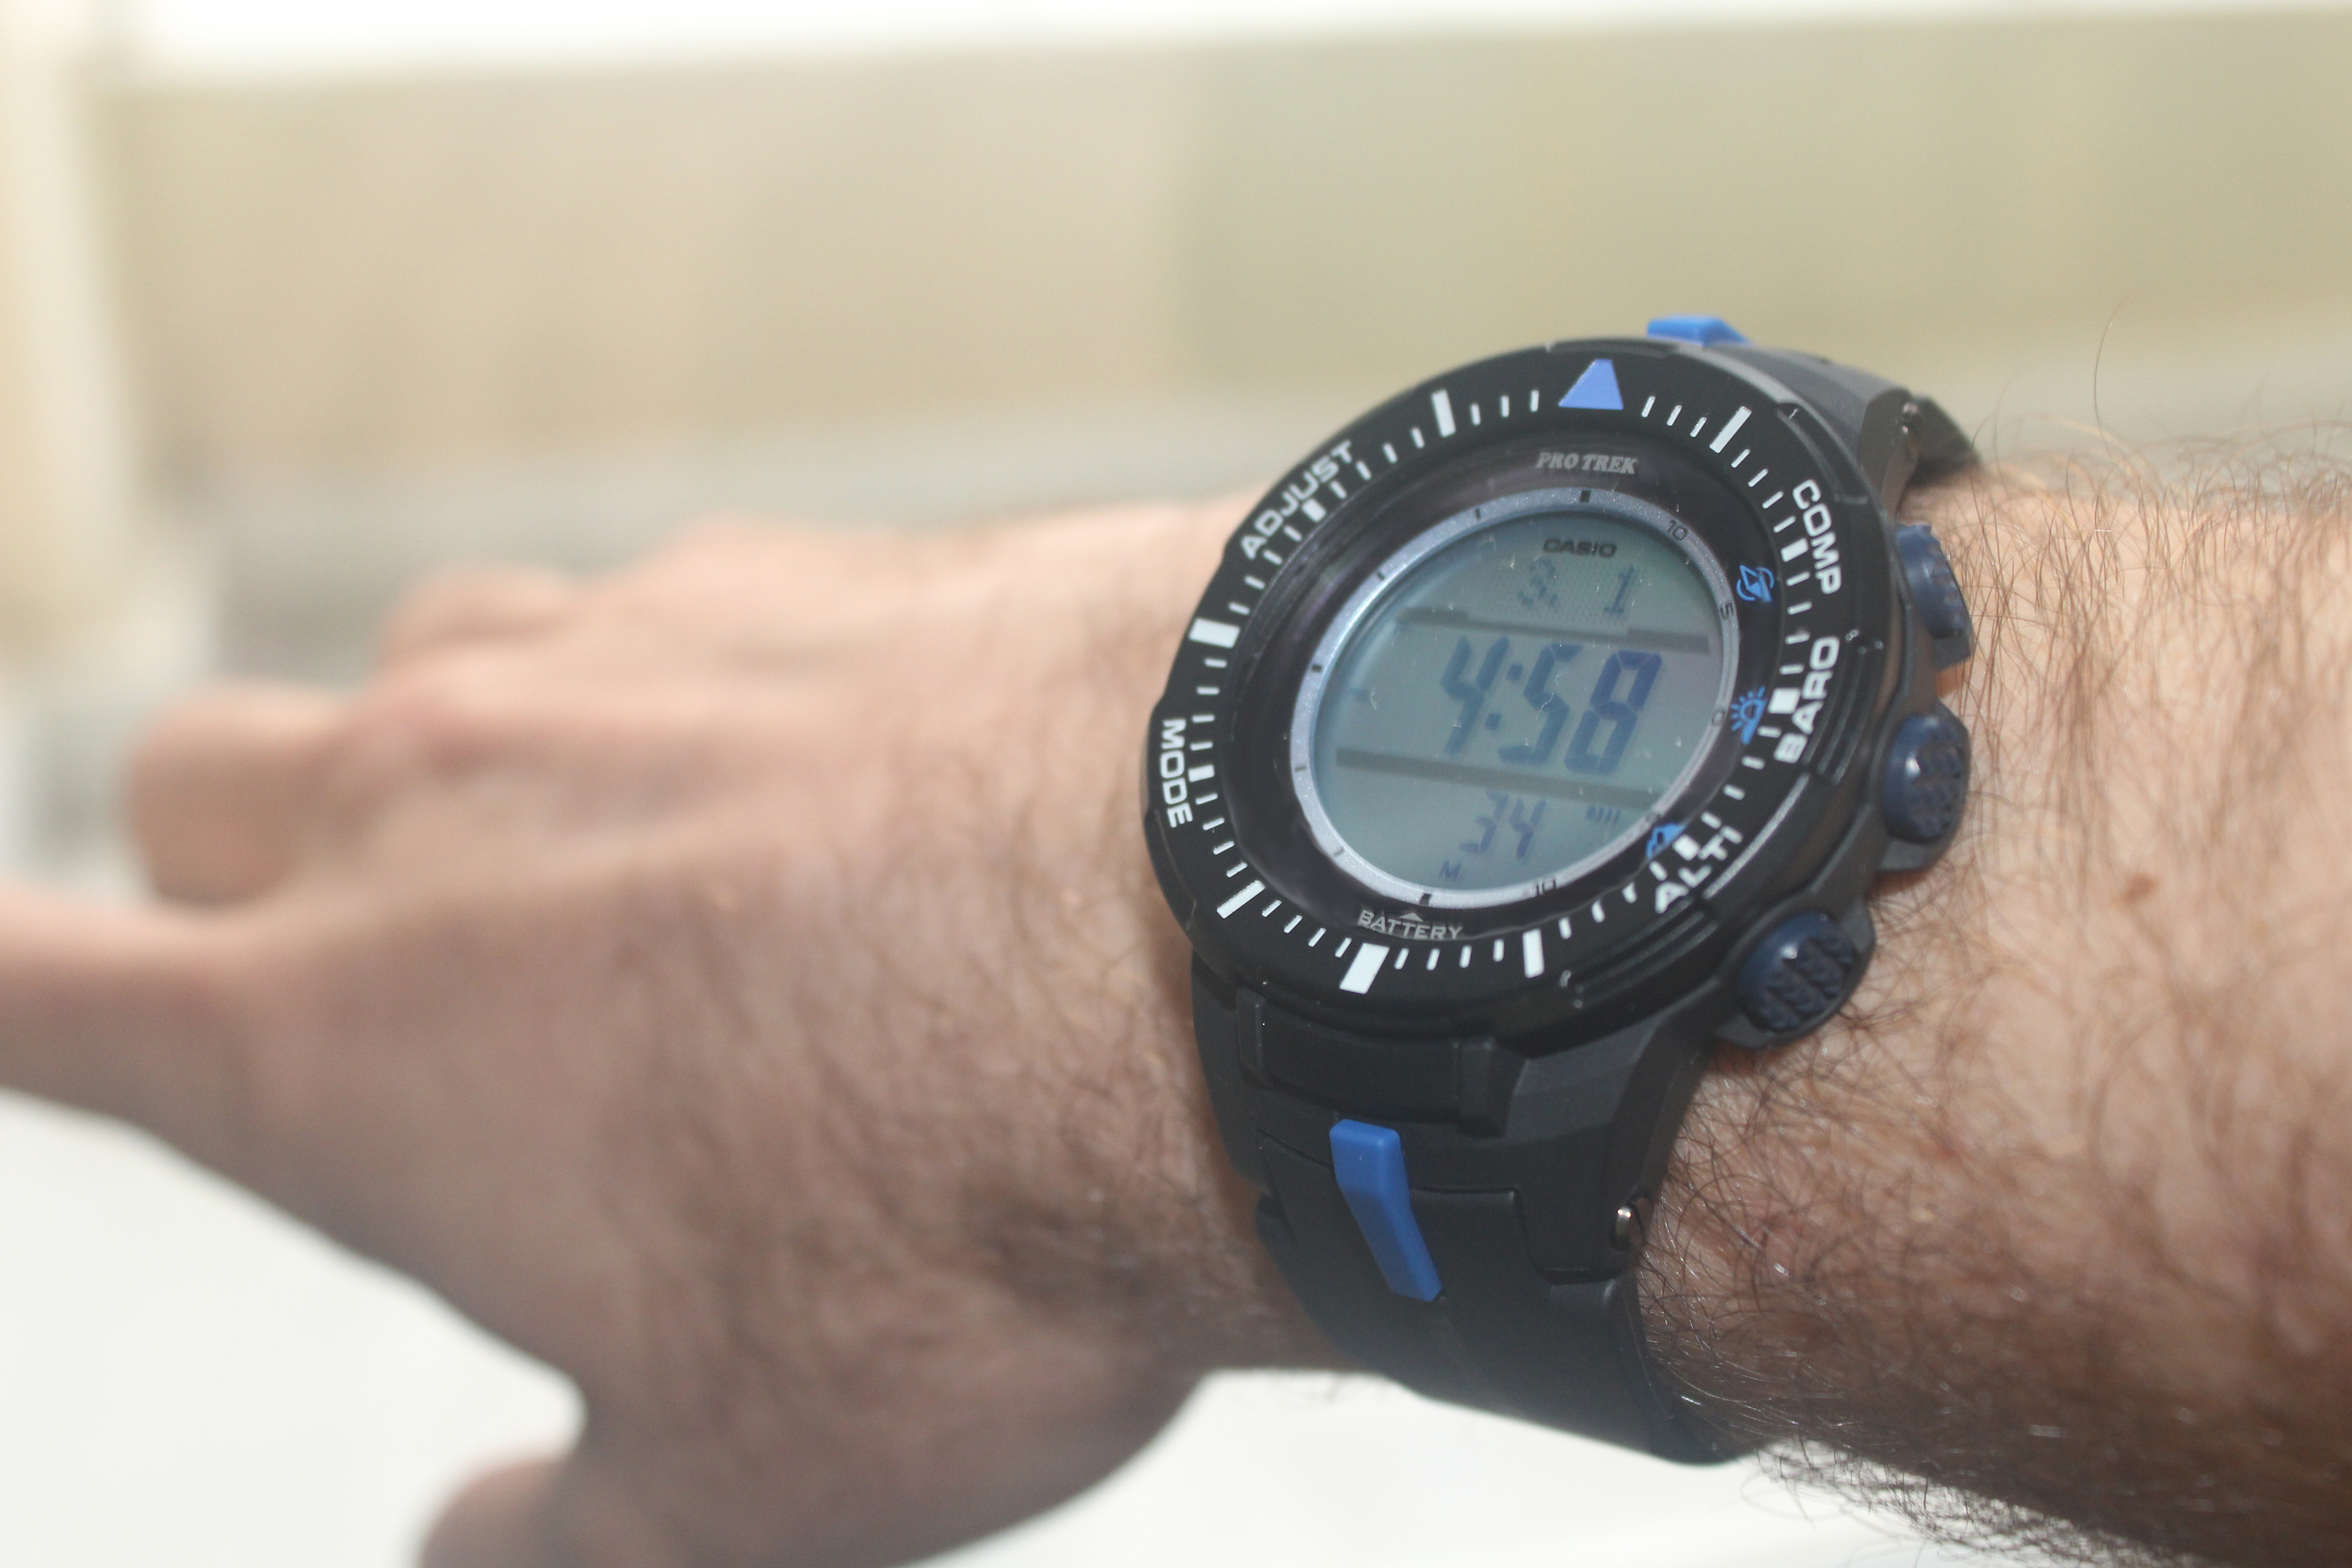 7ea2fac45caa The watch is the new entry of ProTrek series of Casio. The colors is as  shown on the default picture. It seems a little bigger in the photo than it  is ...